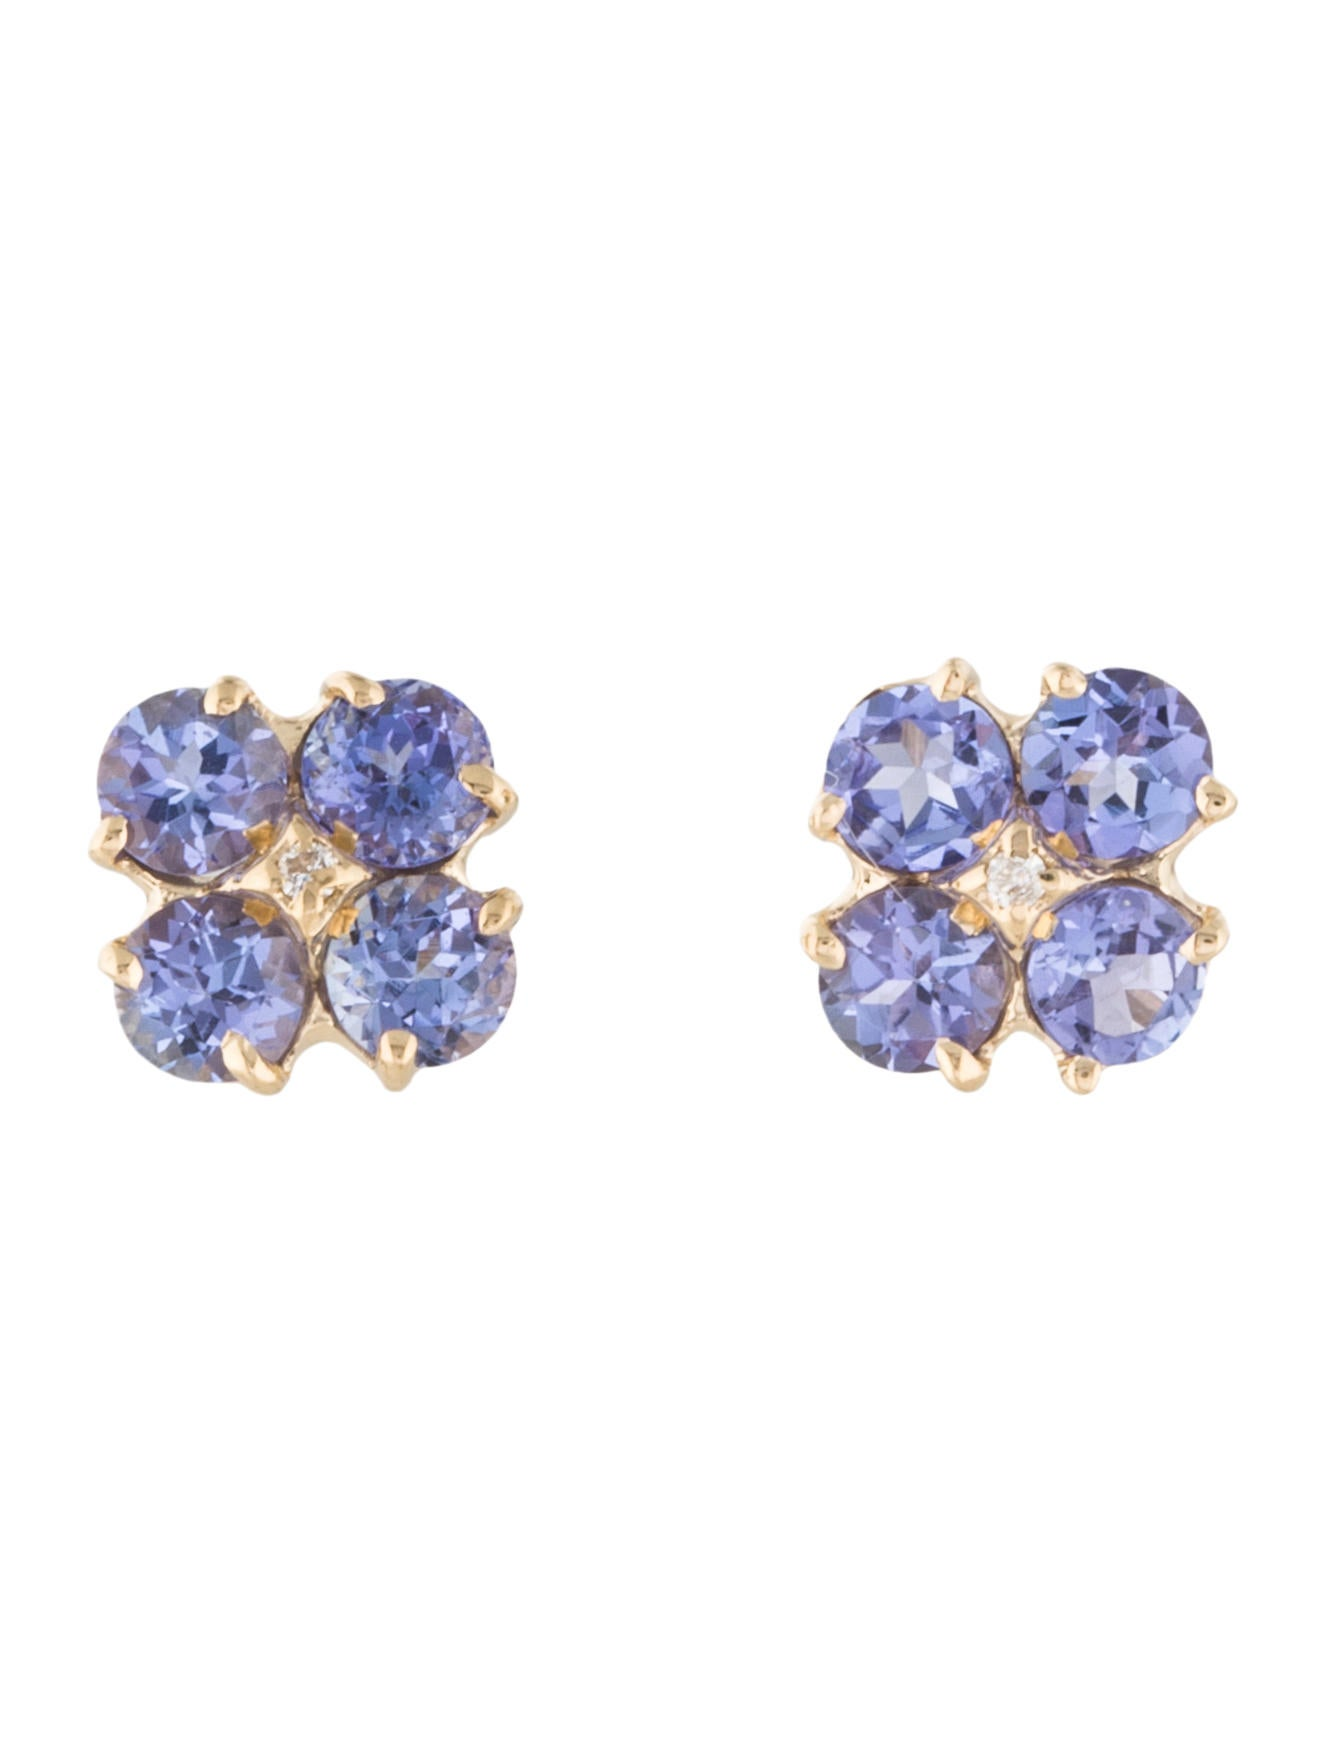 14K Diamond amp Tanzanite Clover Stud Earrings Earrings  : EARRI334781enlarged from www.therealreal.com size 1327 x 1750 jpeg 72kB